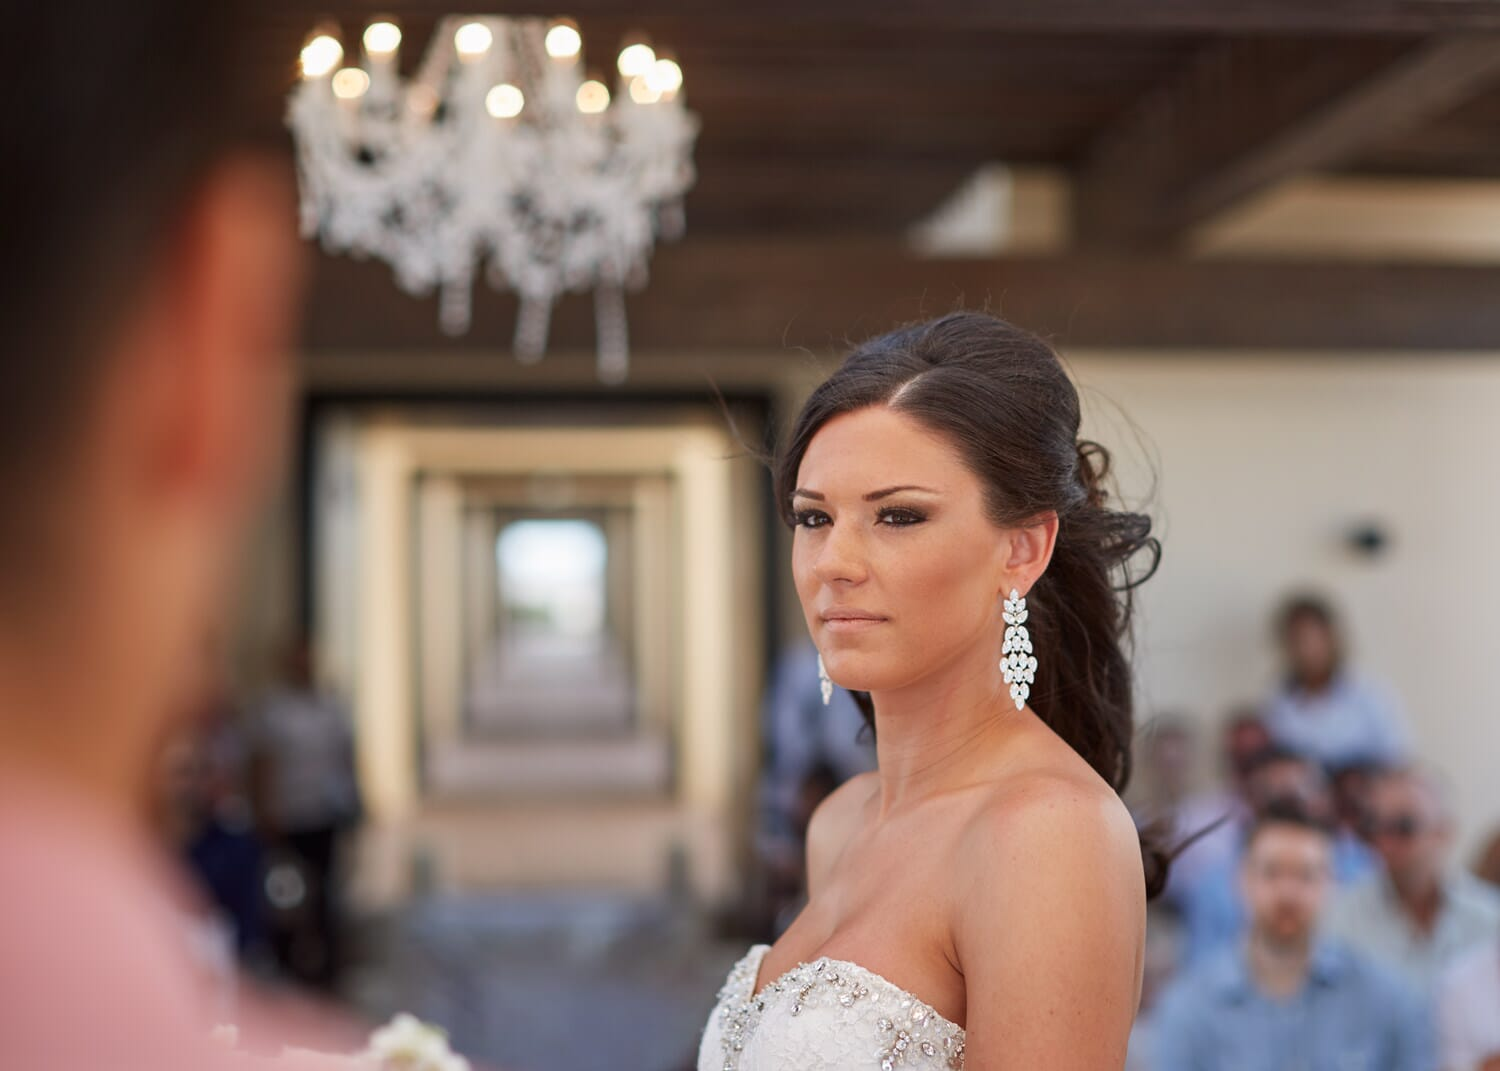 Royalton Riviera Cancun Wedding - Stephanie and Nolan